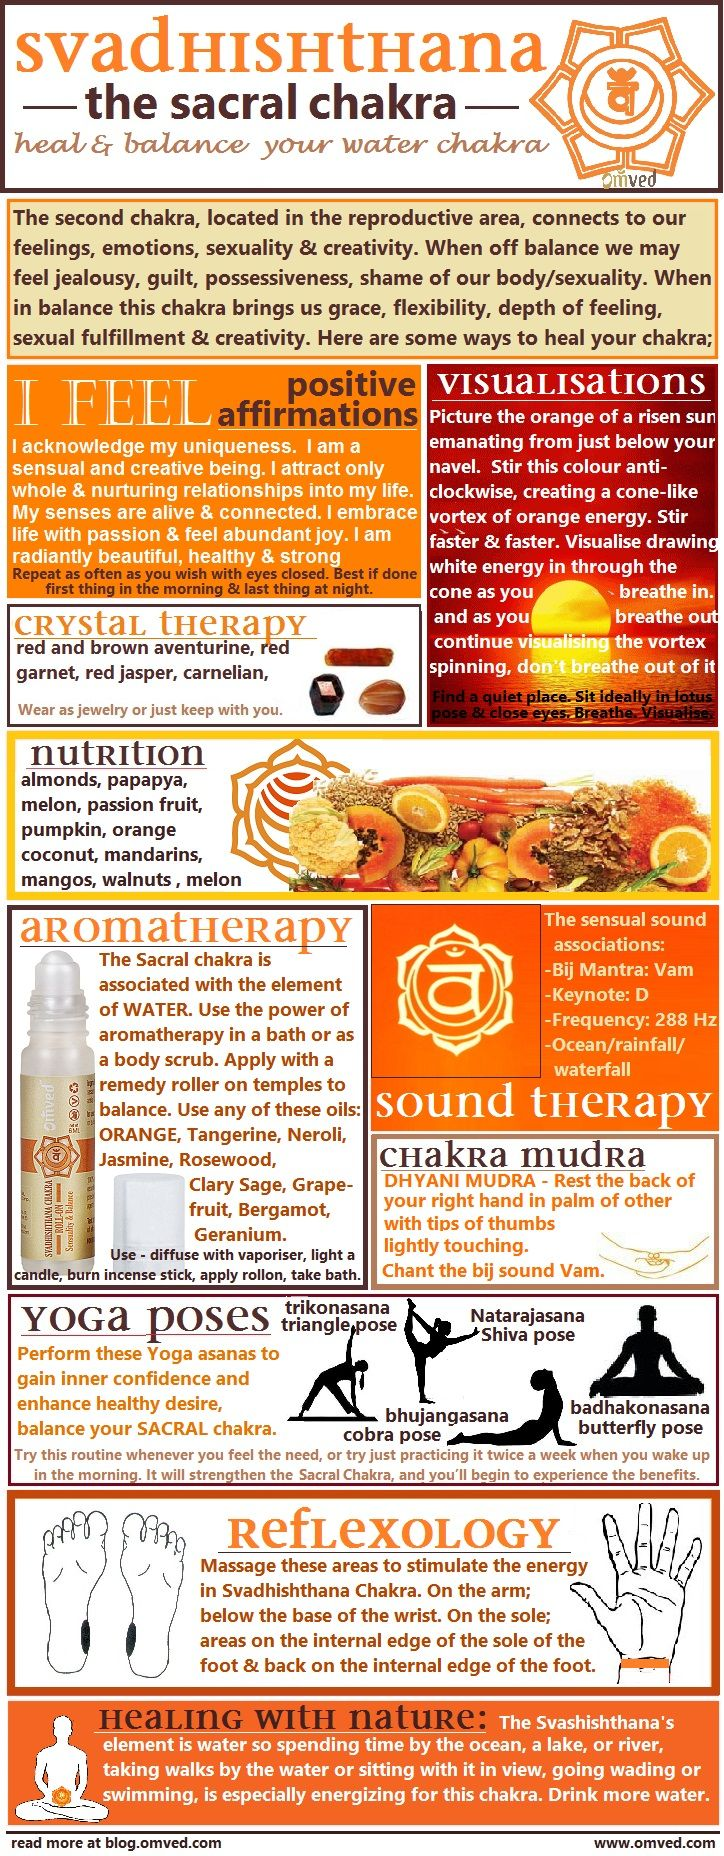 10 ways to Heal & Balance your chakras - There are many ways one can begin to balance their Sacral Chakra. Here are several useful methods, including aromatherapy, visualisations, affirmations, mudra, yoga poses, nutrition, reflexology color, nature and sound therapy!                                                                                                                                                     More